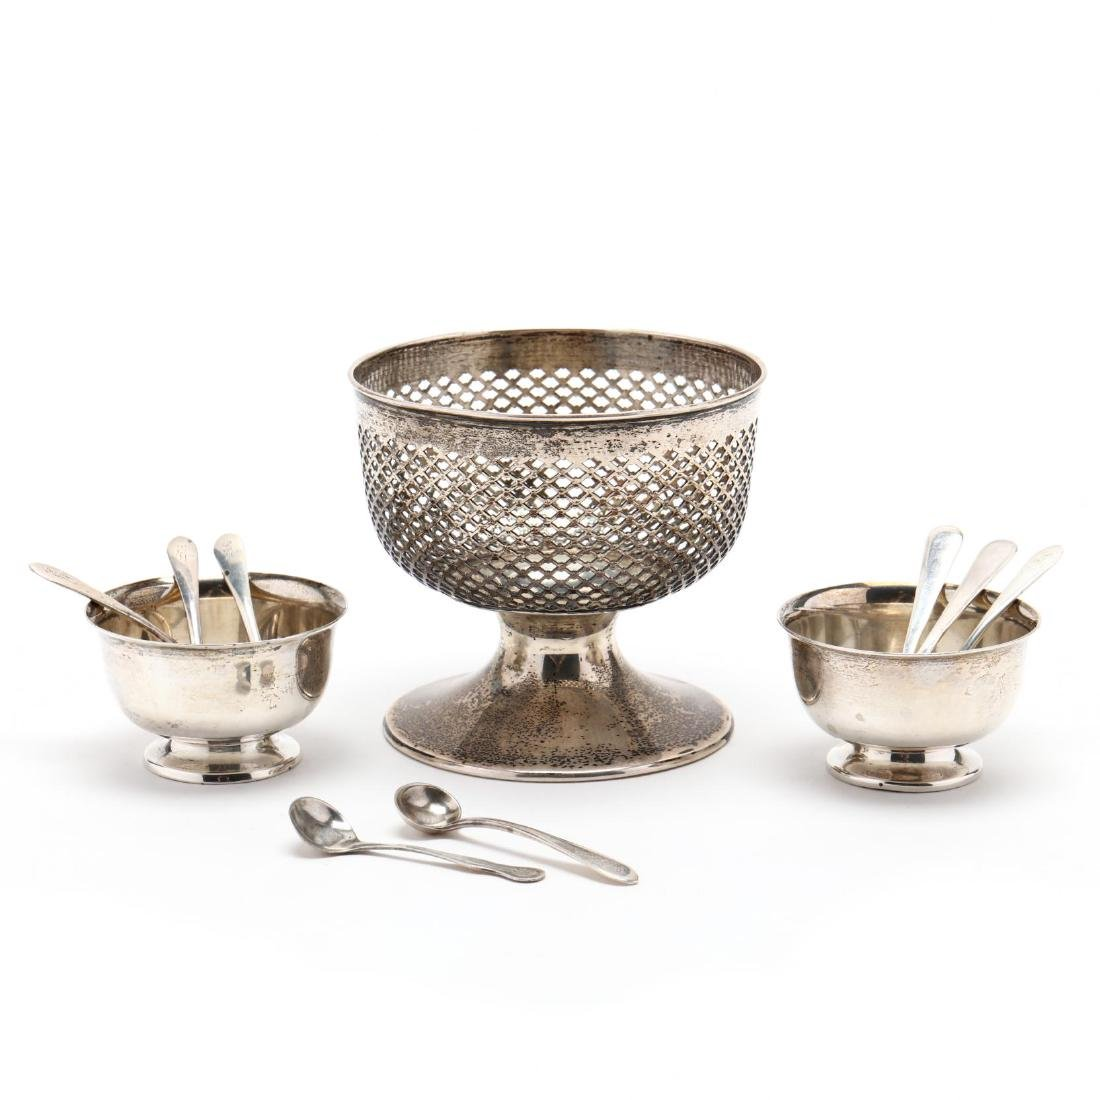 A Group of Sterling Silver